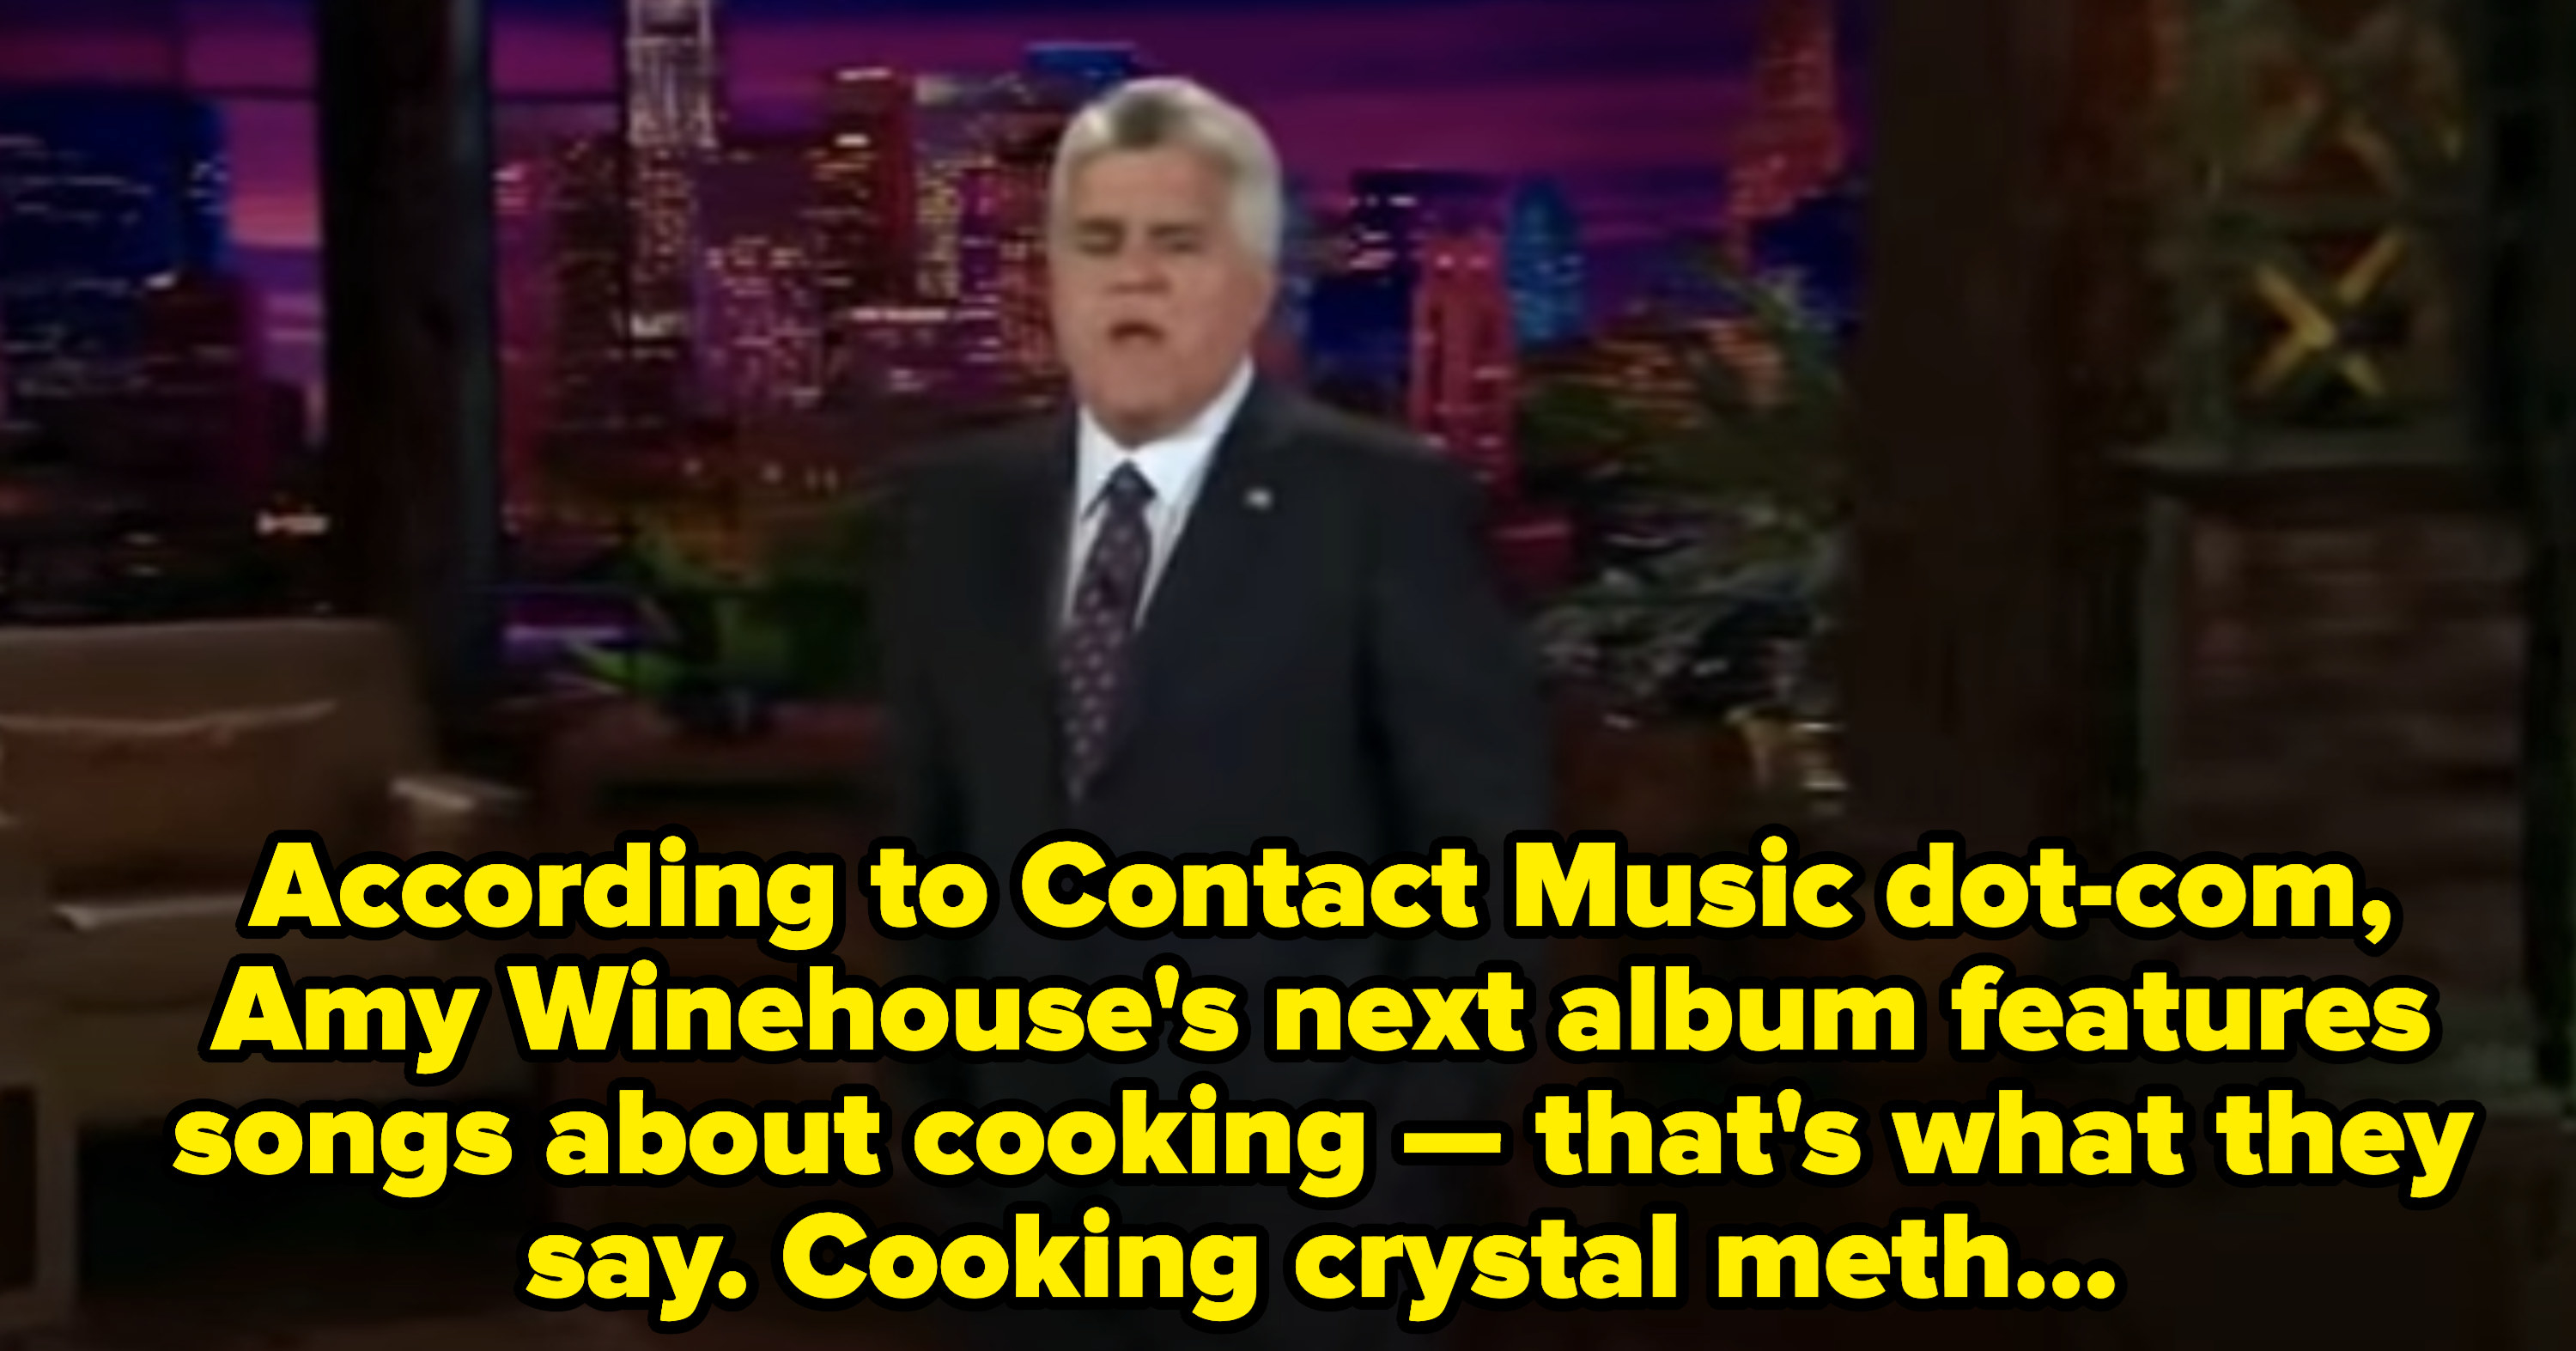 Leno making a horrible joke that Winehouse's album is about cooking crystal meth